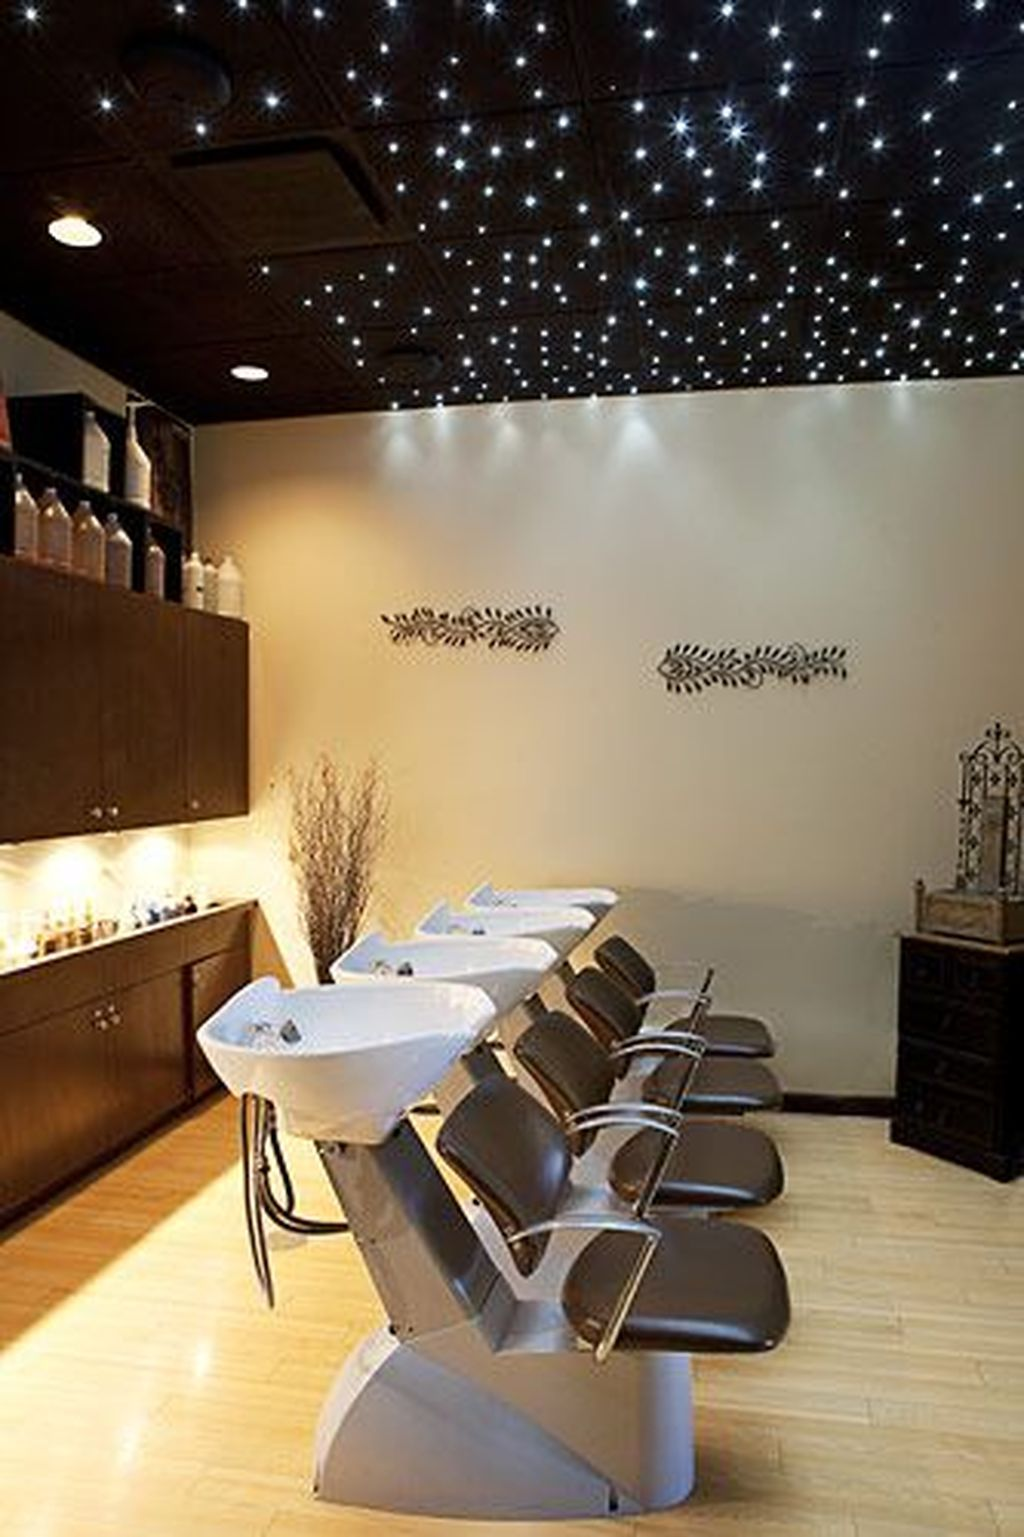 50+ Hair Salon Ideas The plan is just one of the